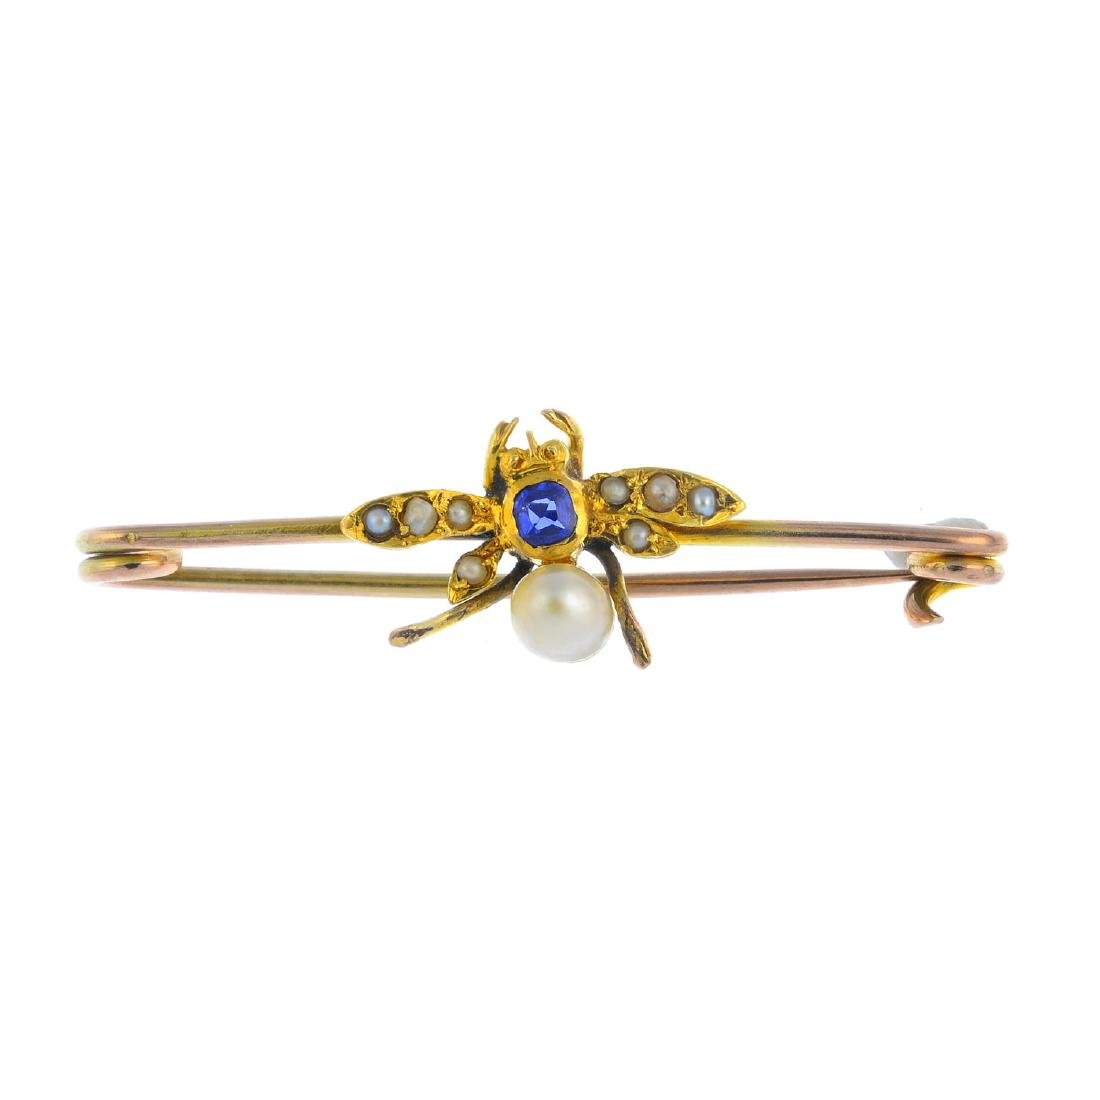 A late Victorian gold gem-set fly brooch. The